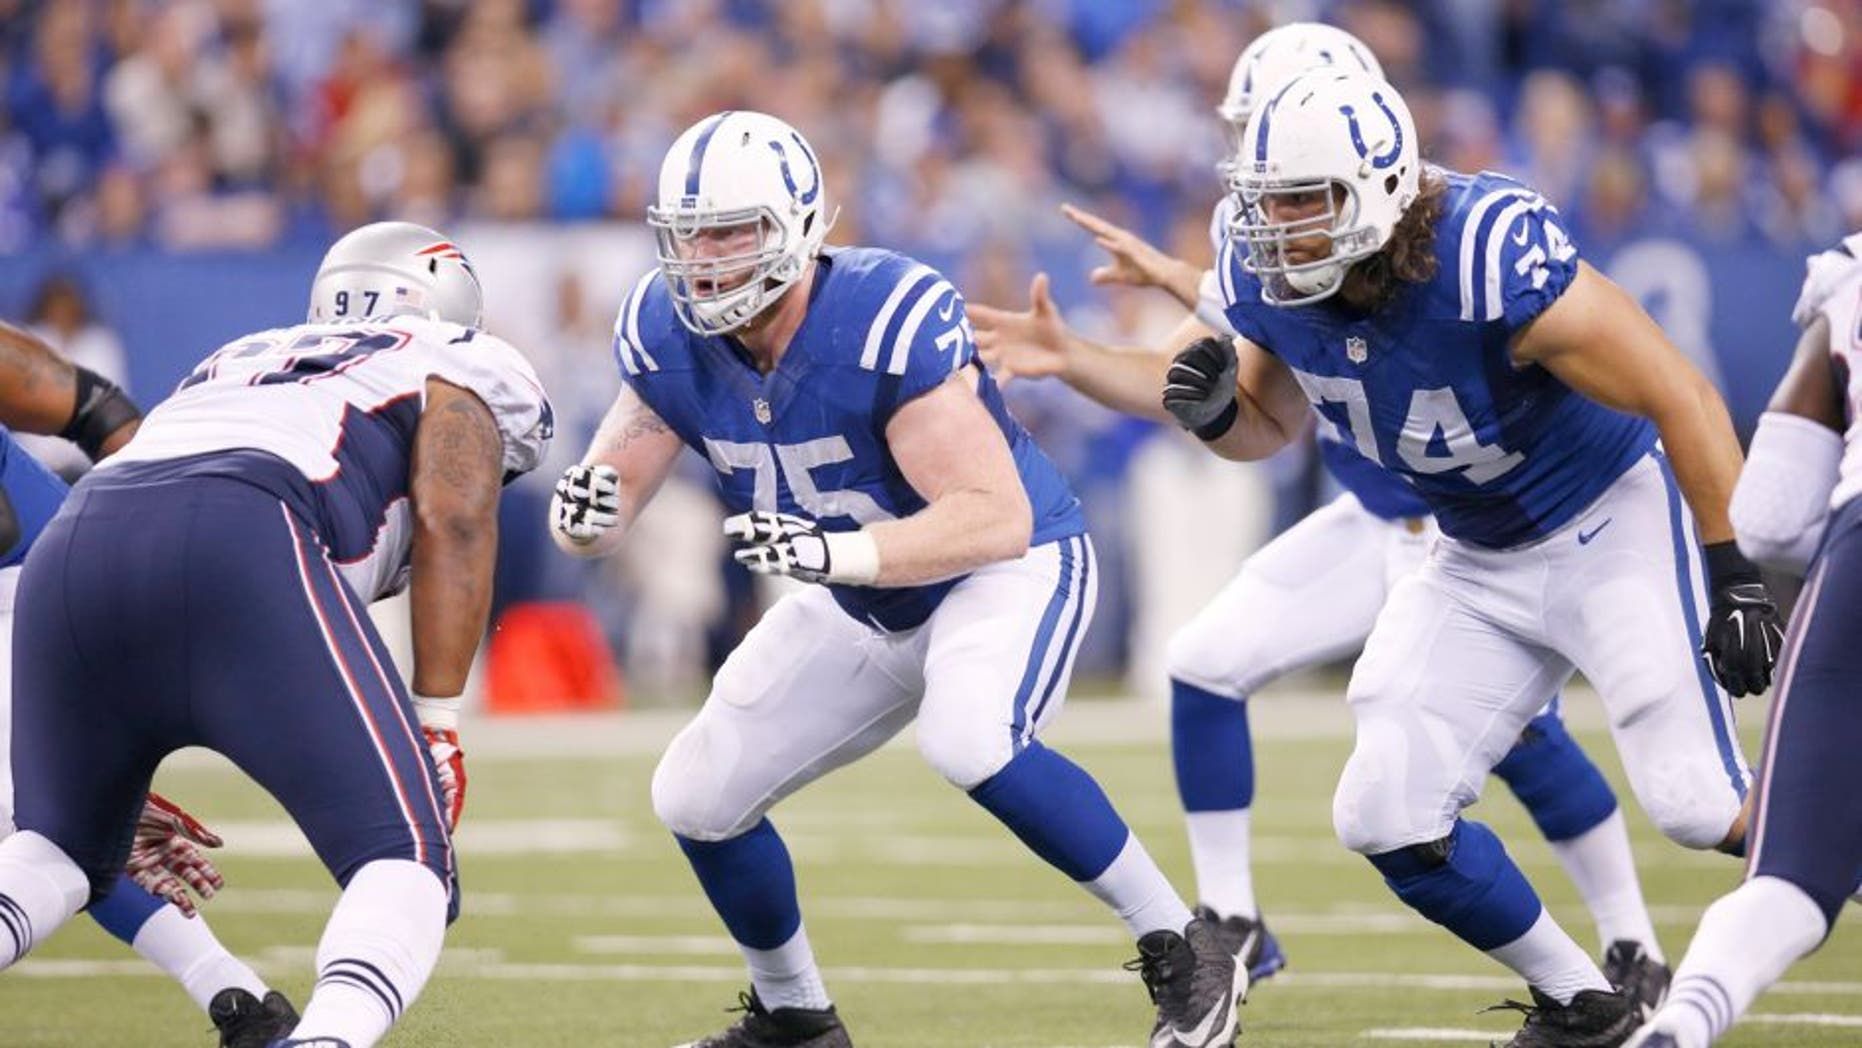 INDIANAPOLIS, IN - OCTOBER 18: Jack Mewhort #75 of the Indianapolis Colts in action during a game against the New England Patriots at Lucas Oil Stadium on October 18, 2015 in Indianapolis, Indiana. The Patriots defeated the Colts 34-27. (Photo by Joe Robbins/Getty Images)